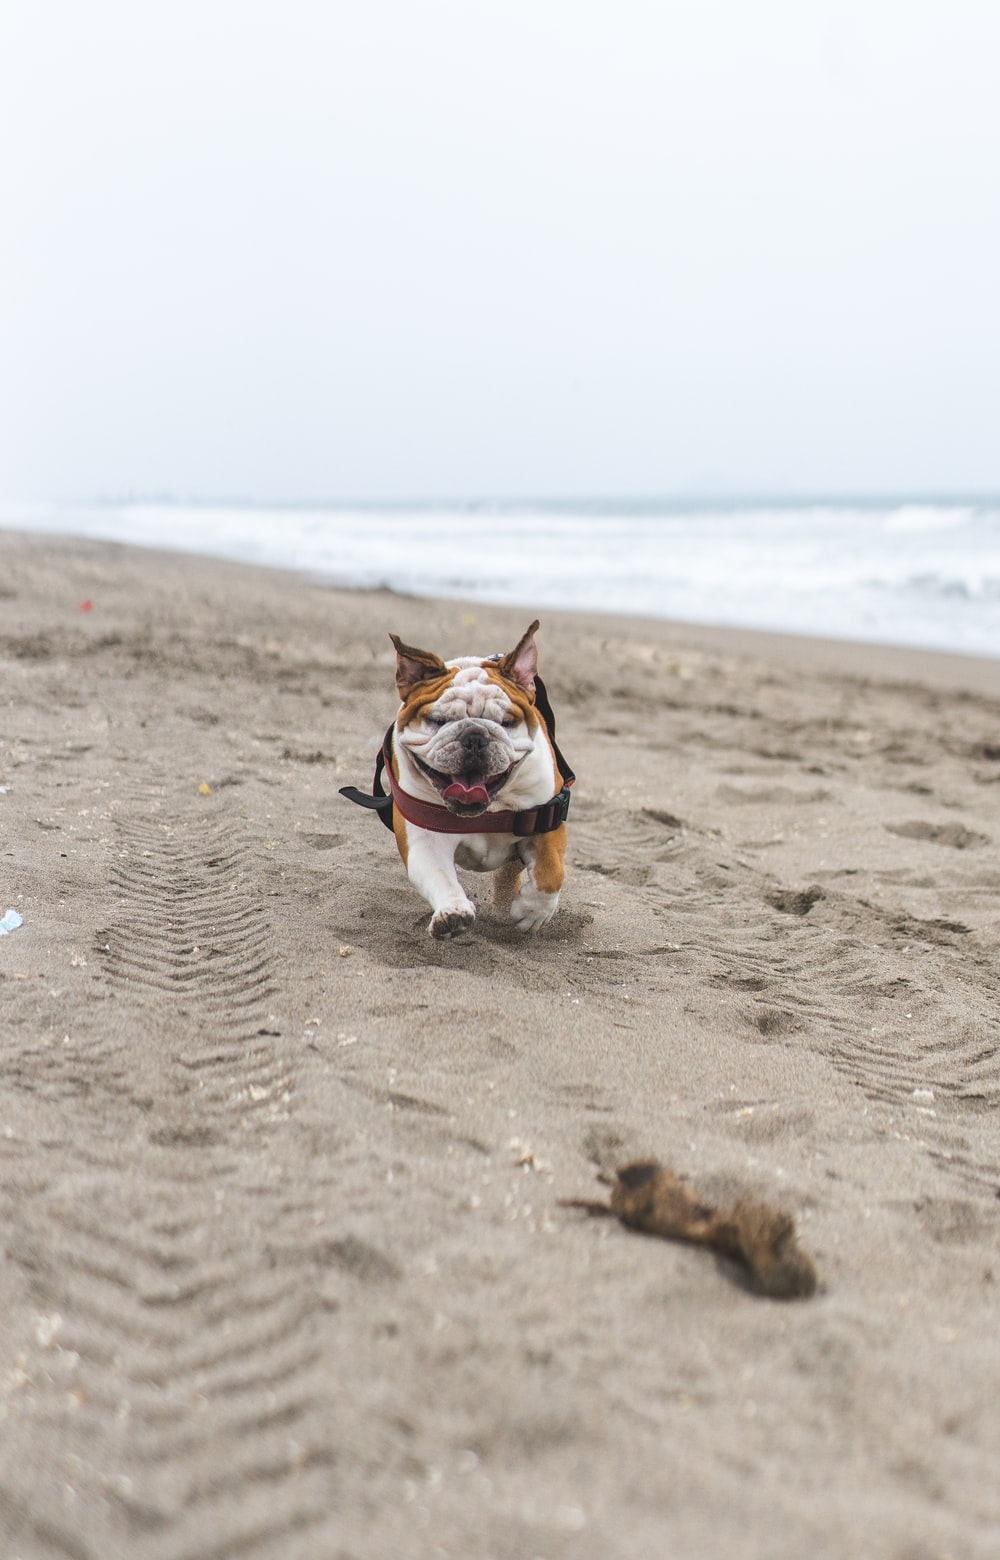 brown and white short coated dog running on beach during daytime